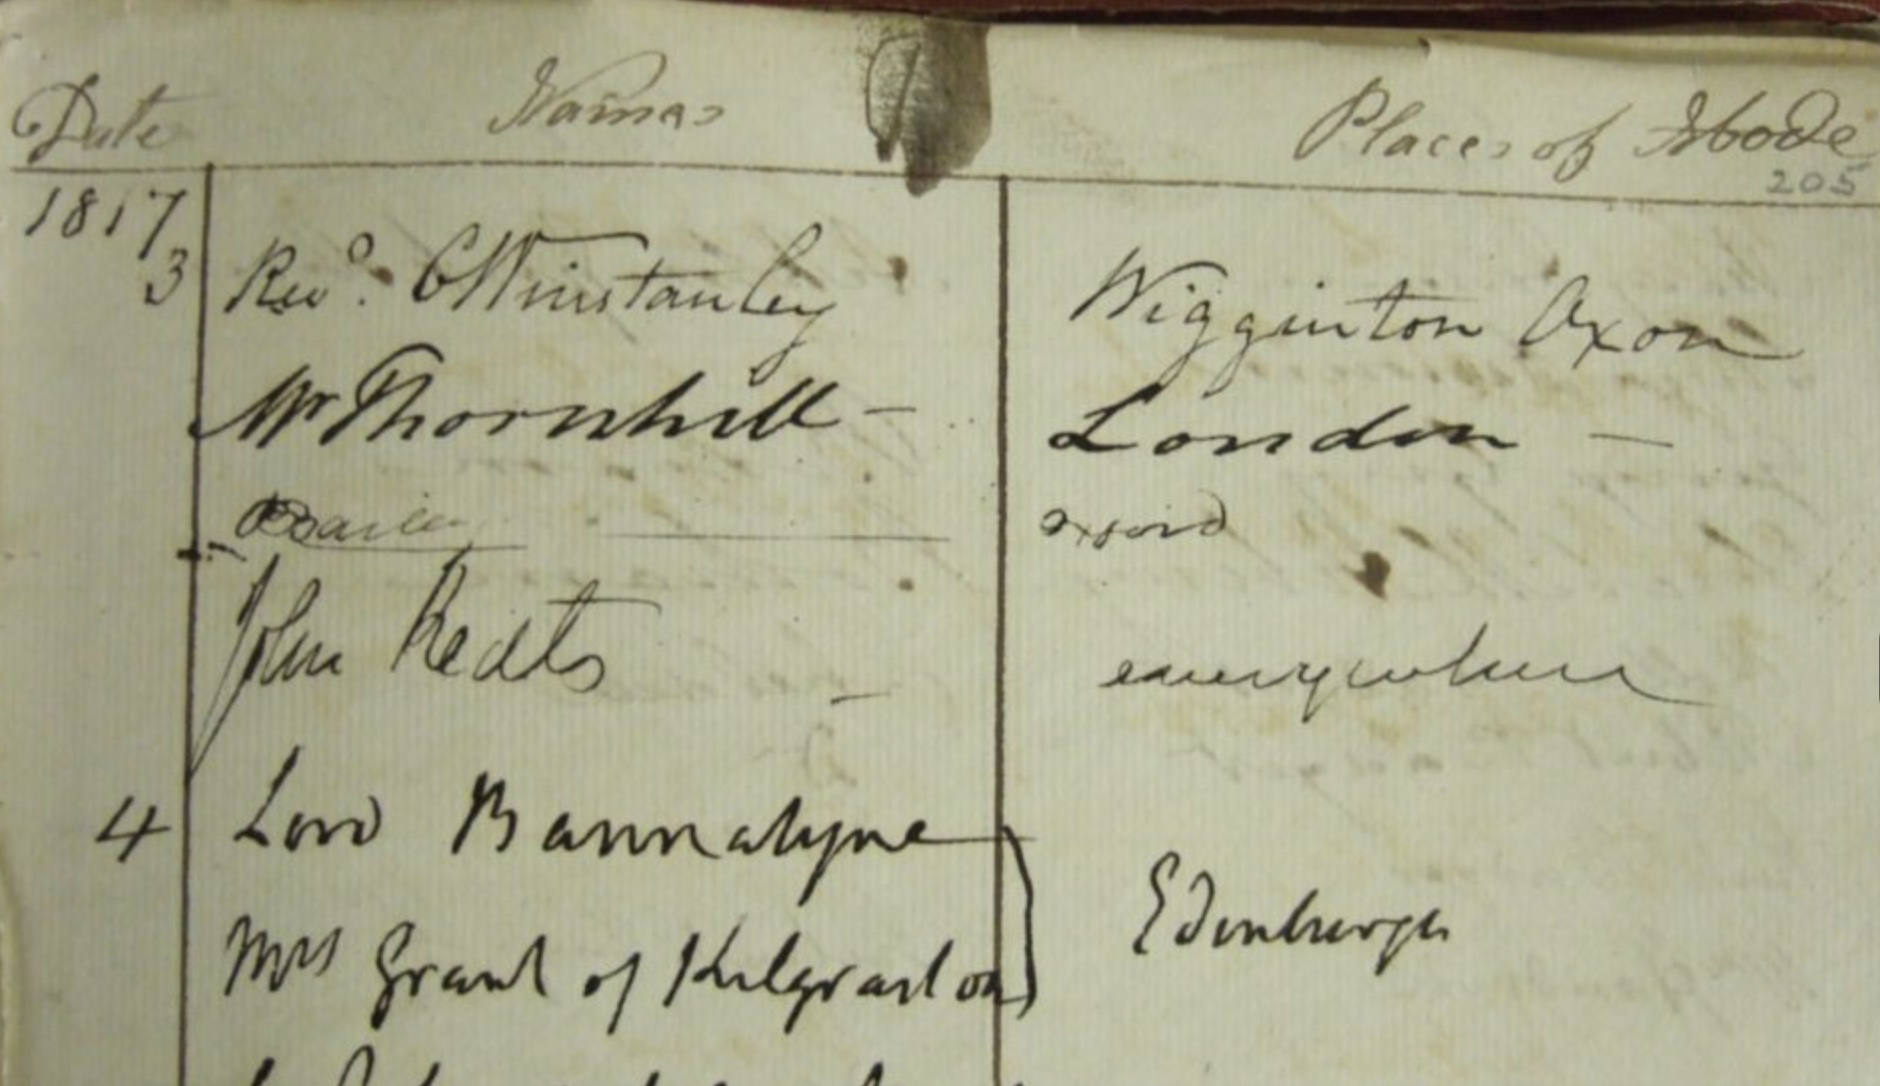 Keats signs the visitors' book at Shakespeare's birthplace, with his Place of         Abode as everywhere. The full book is at the Shakespeare Birthplace Trust archives         (DR185/1). Click to enlarge.